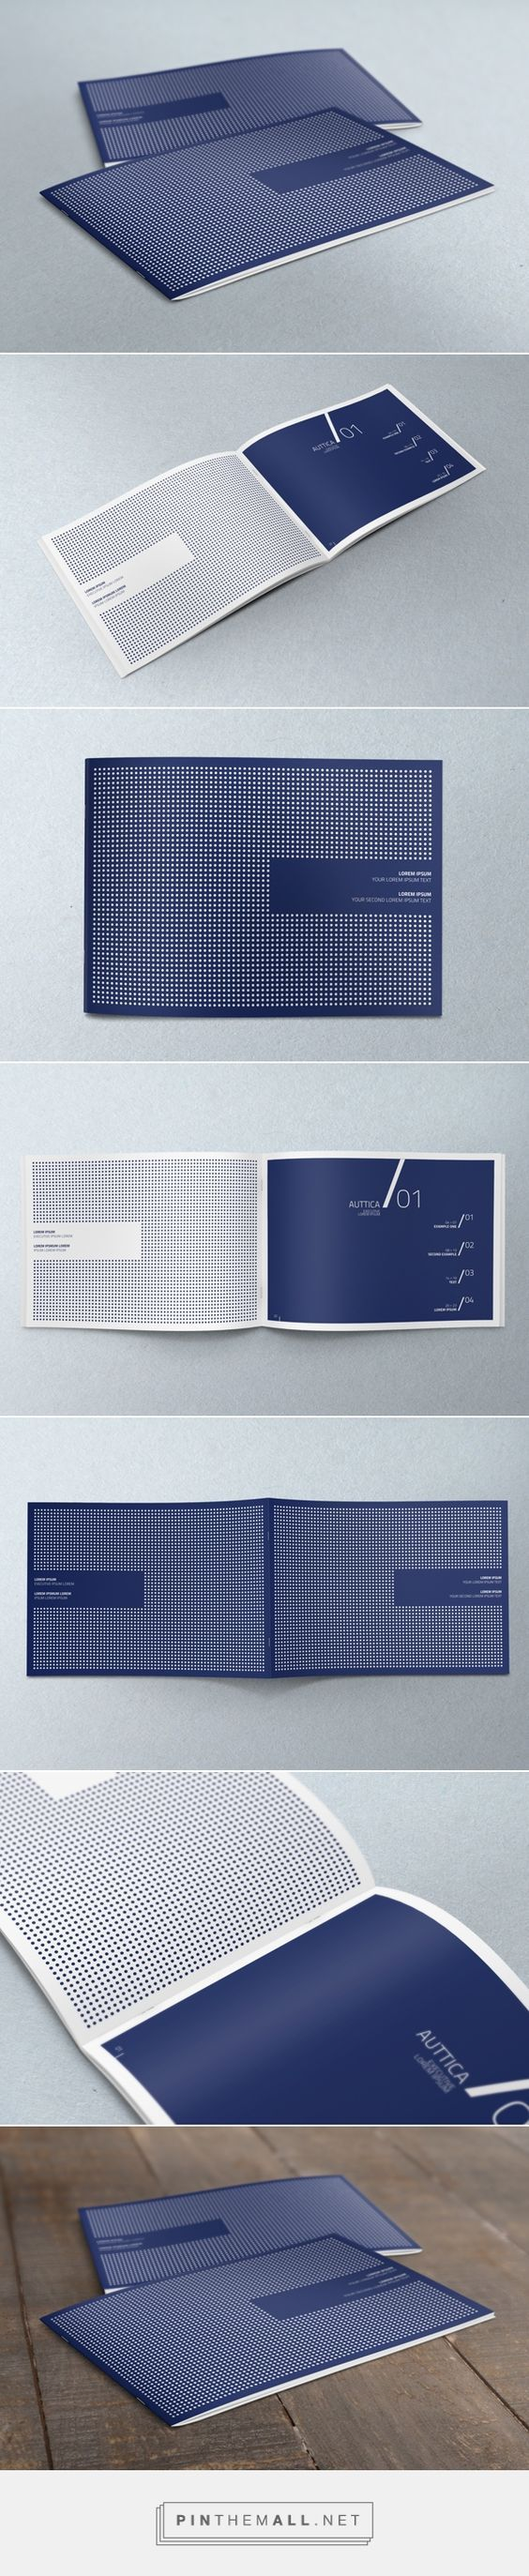 Horizontal A4 Brochure Mock-up by yogurt86 design studio: